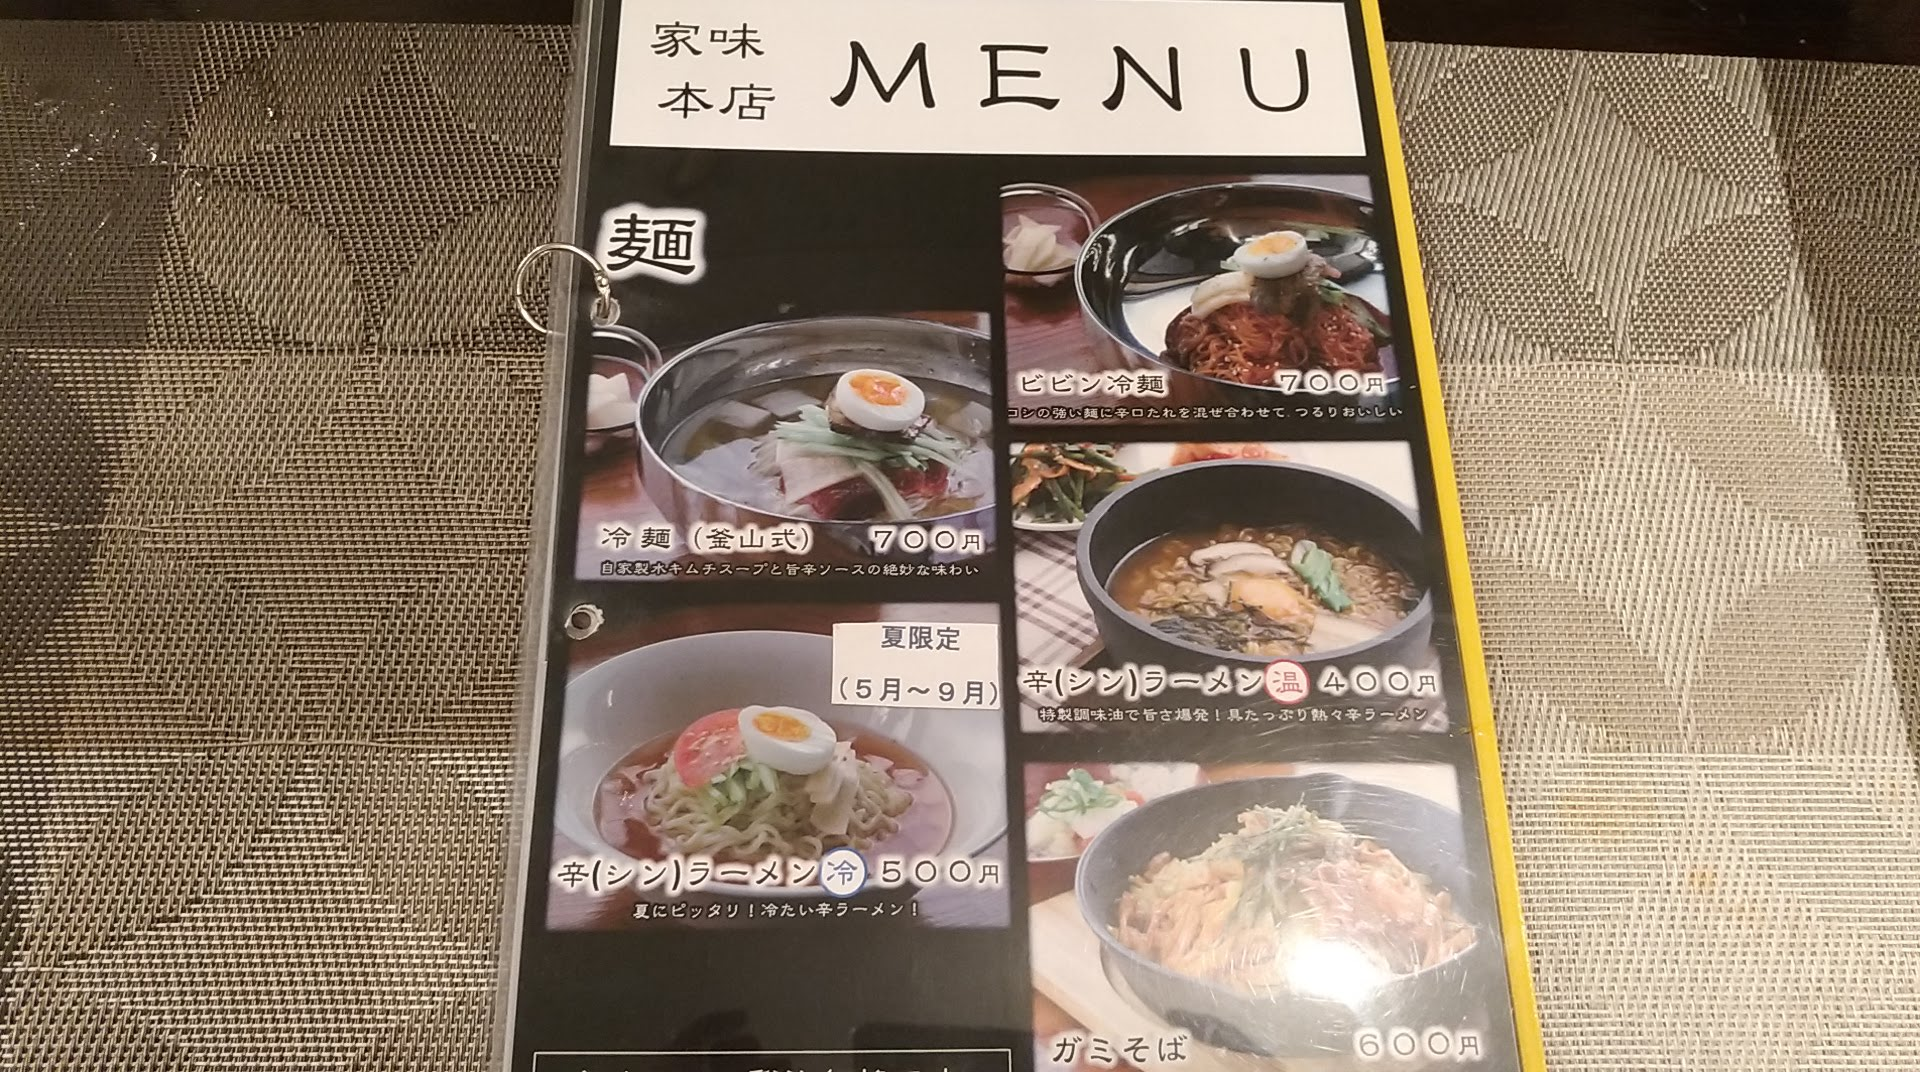 The menu of Gamihonten 1